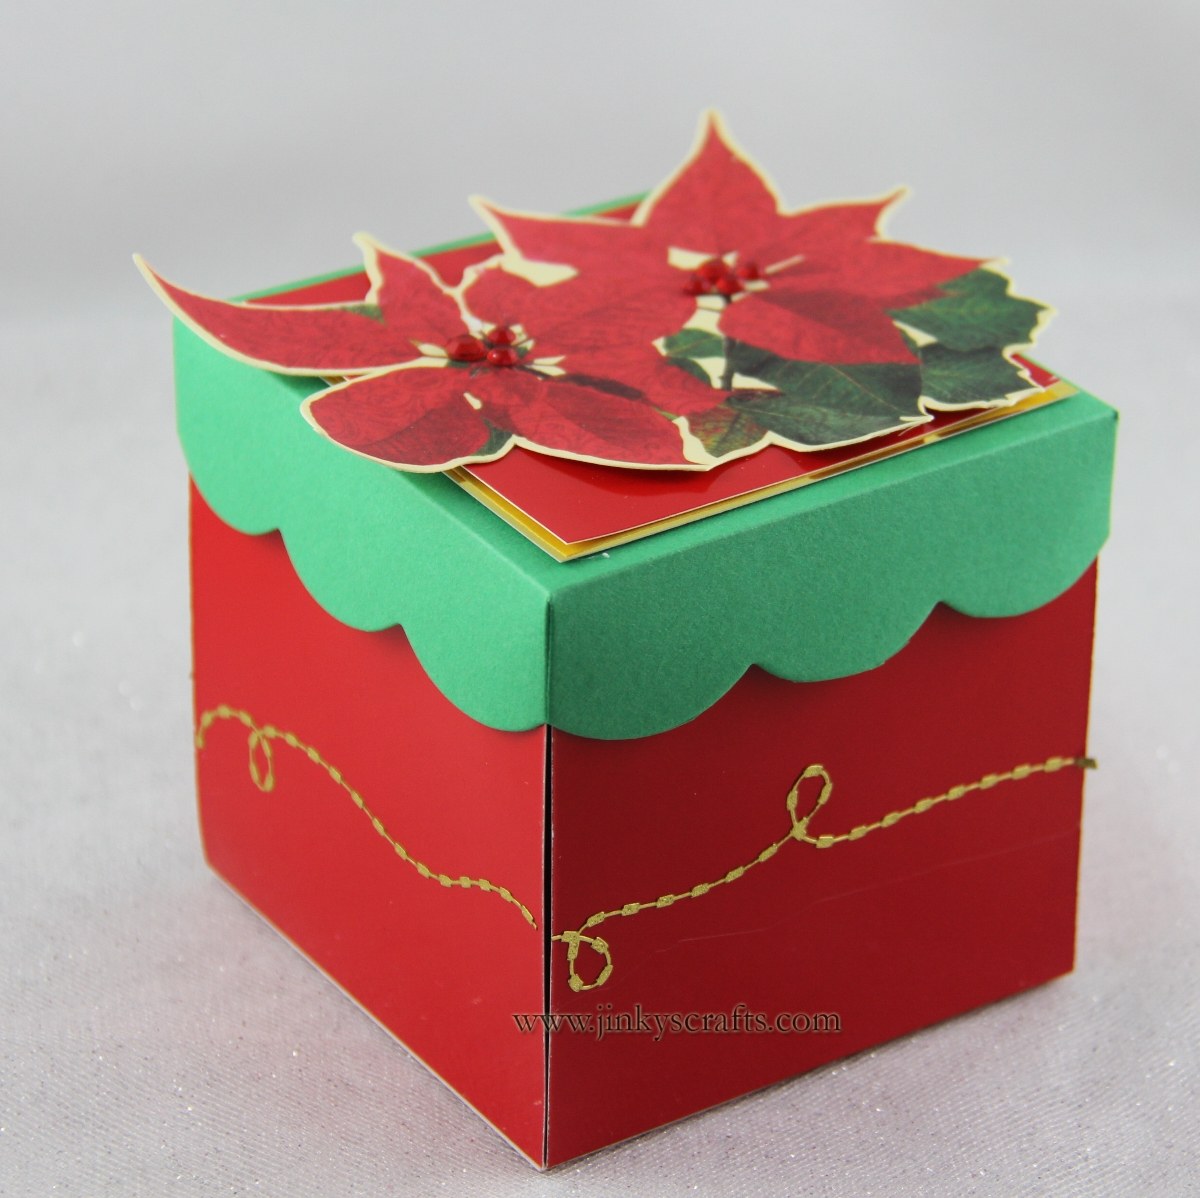 Jinky's Crafts & Designs: Dangling Christmas Ornament ...